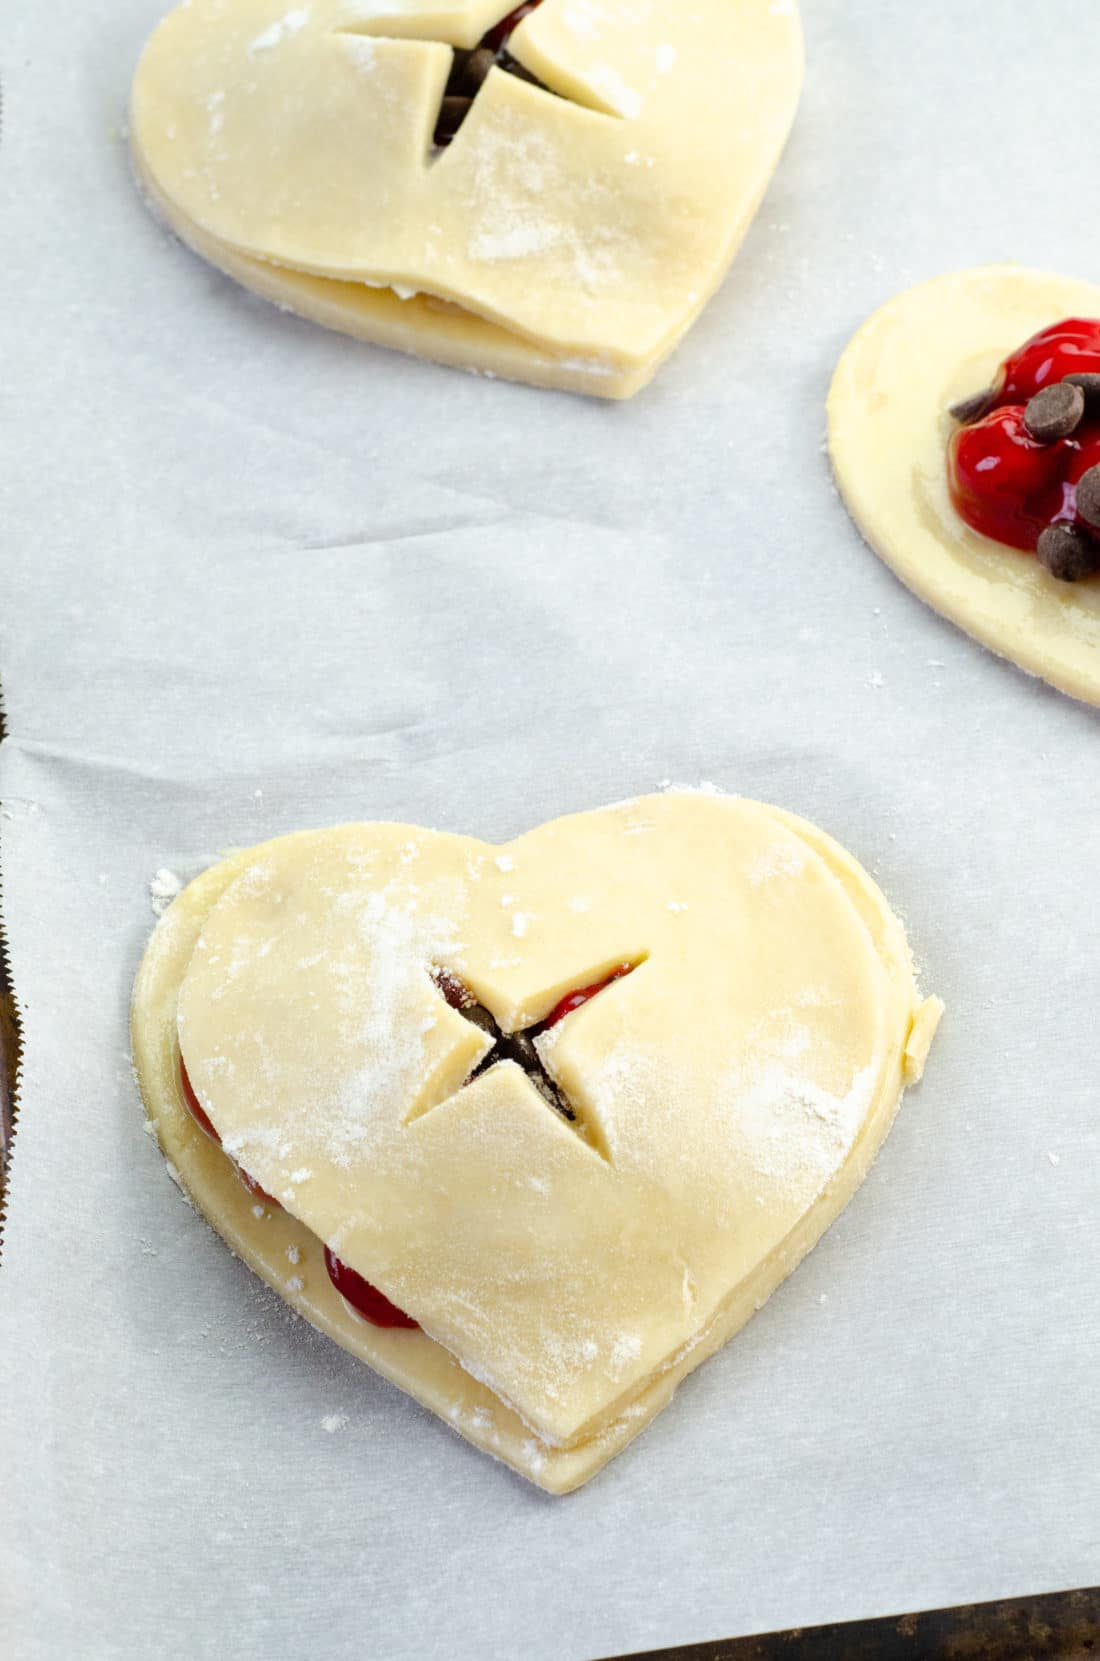 Chocolate Cherry Hand Pies Butter Pie Crust. Say I heart you to someone special this Valentine's Day with a delicious homemade treat. Try my super easy to make Chocolate Cherry Hand Pies which include a from scratch buttery flaky pie crust.